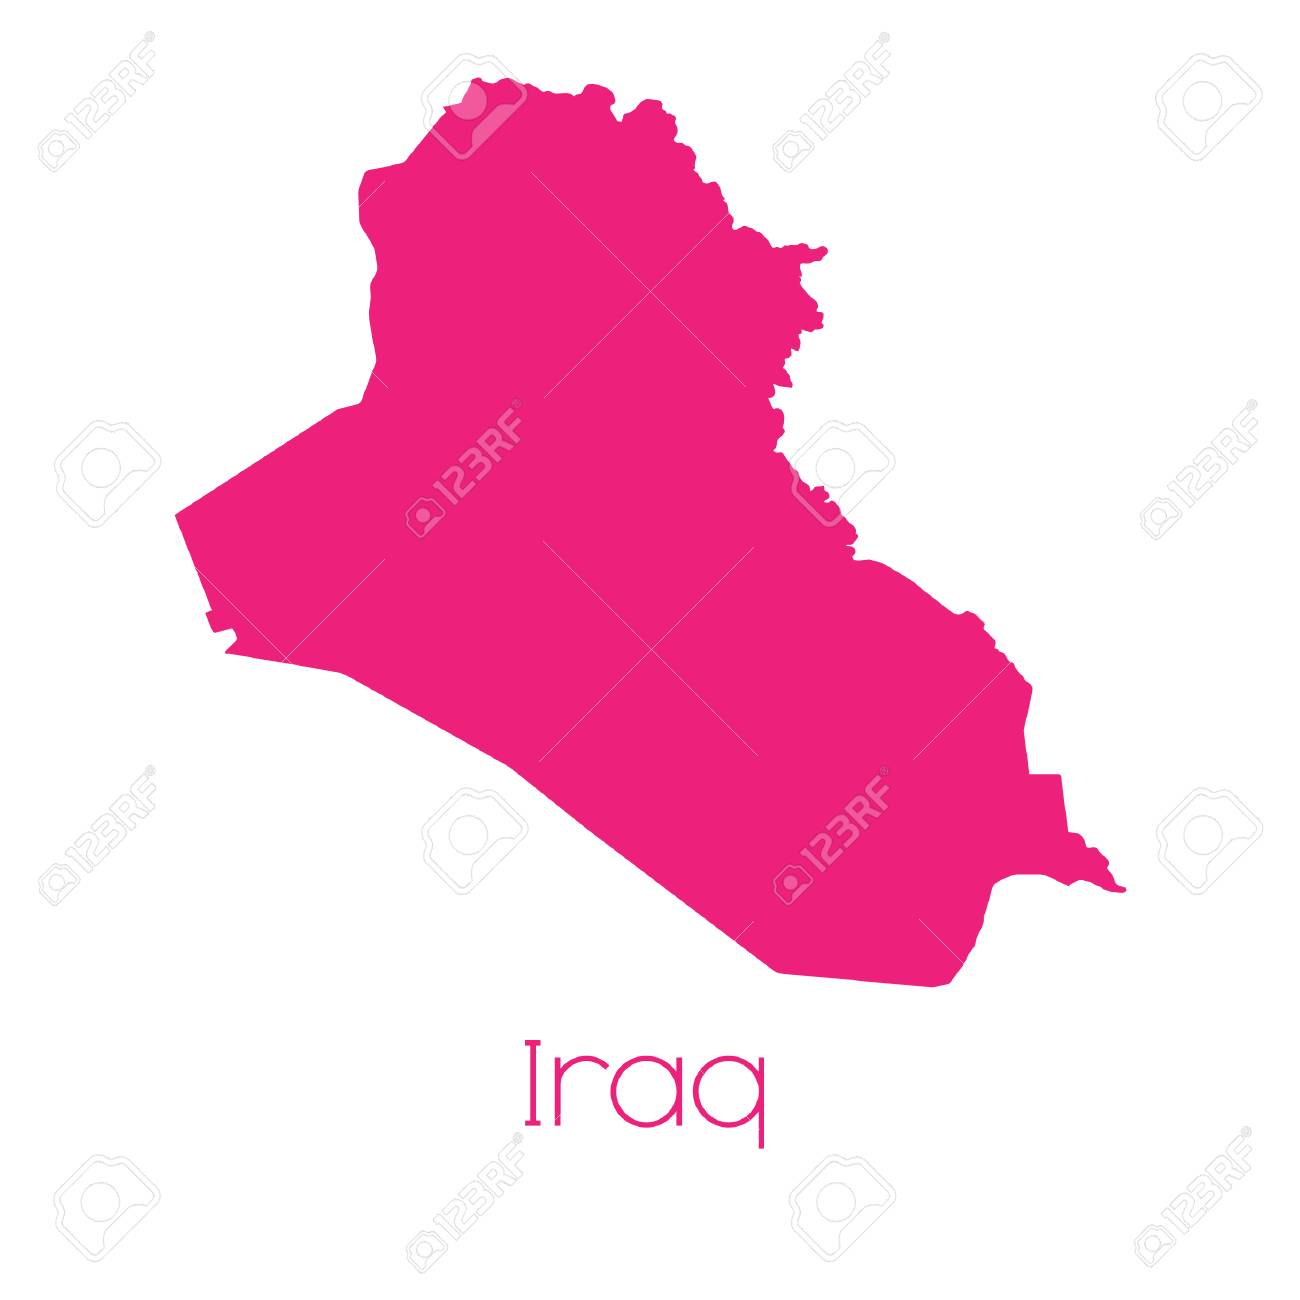 A Map of the country of Iraq